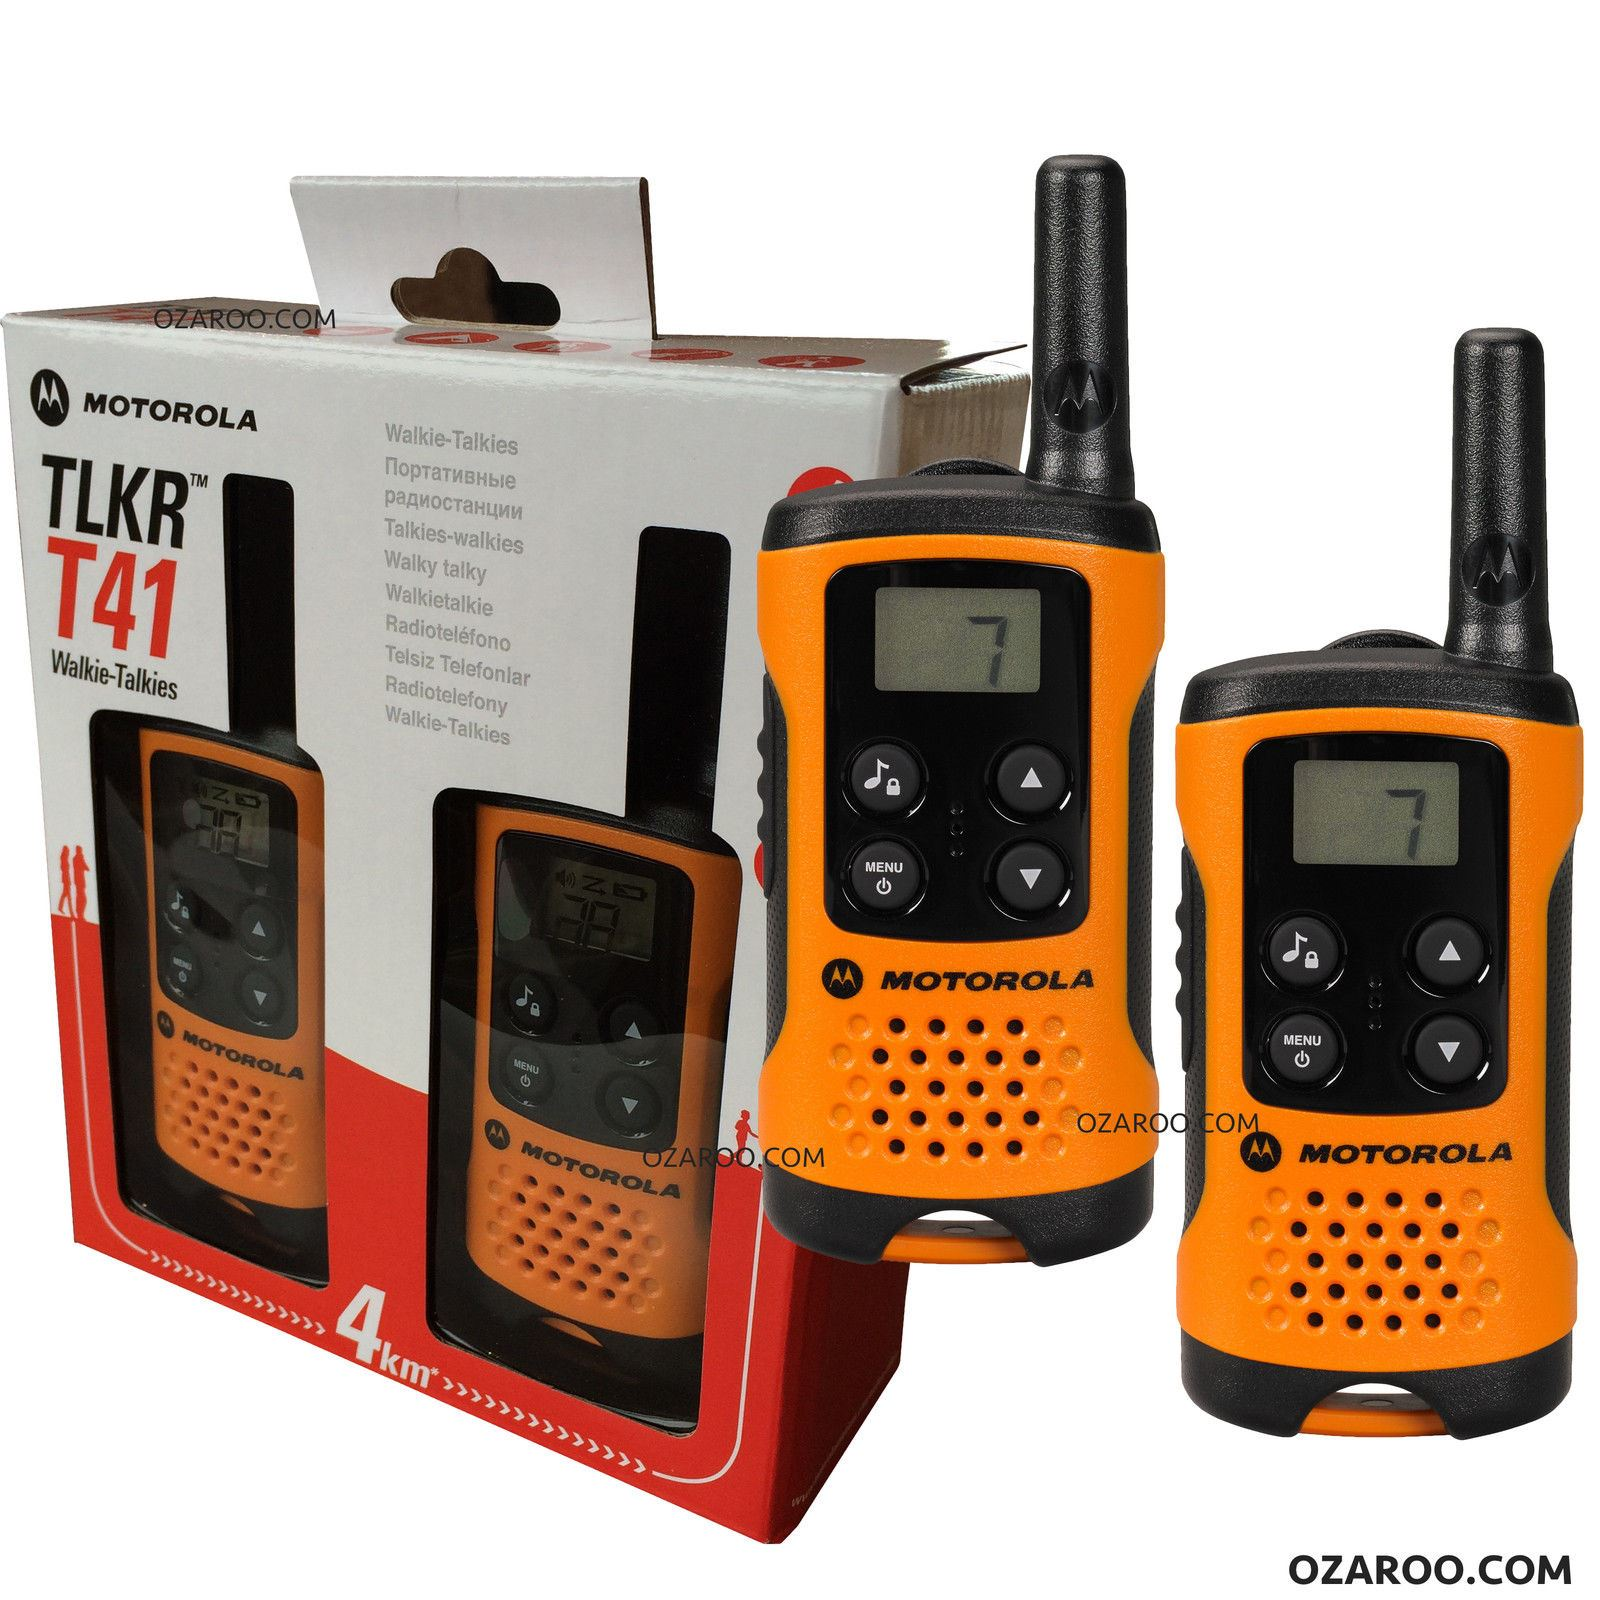 motorola tlkr t41 2 way walkie talkie gift set pmr 446 radio kit orange 2 pack ebay. Black Bedroom Furniture Sets. Home Design Ideas